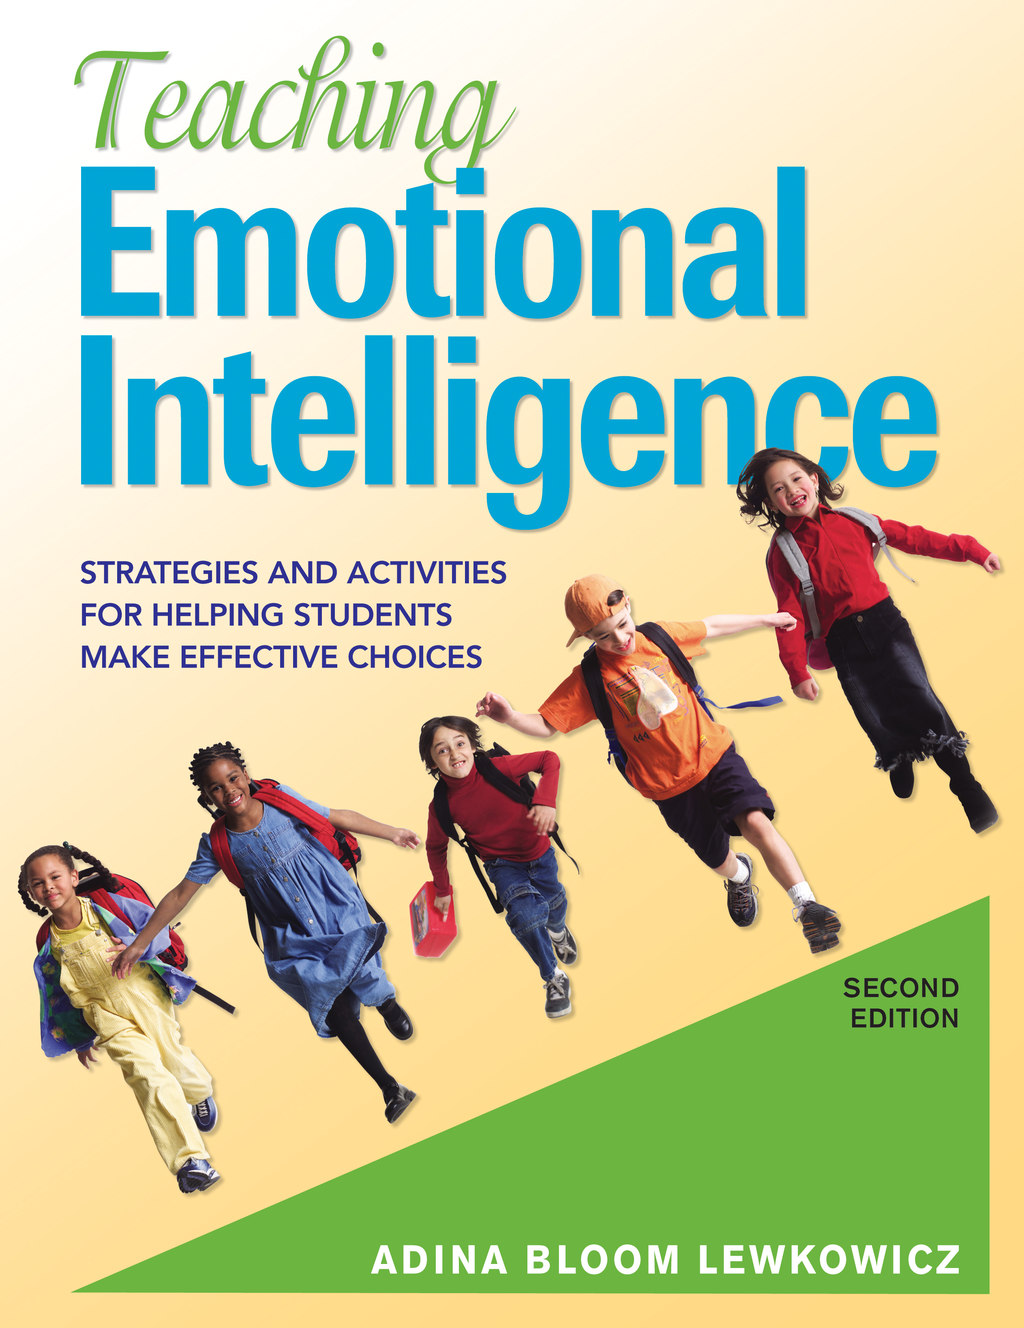 Teaching Emotional Intelligence Strategies and Activities for Helping Students Make Effective Choices